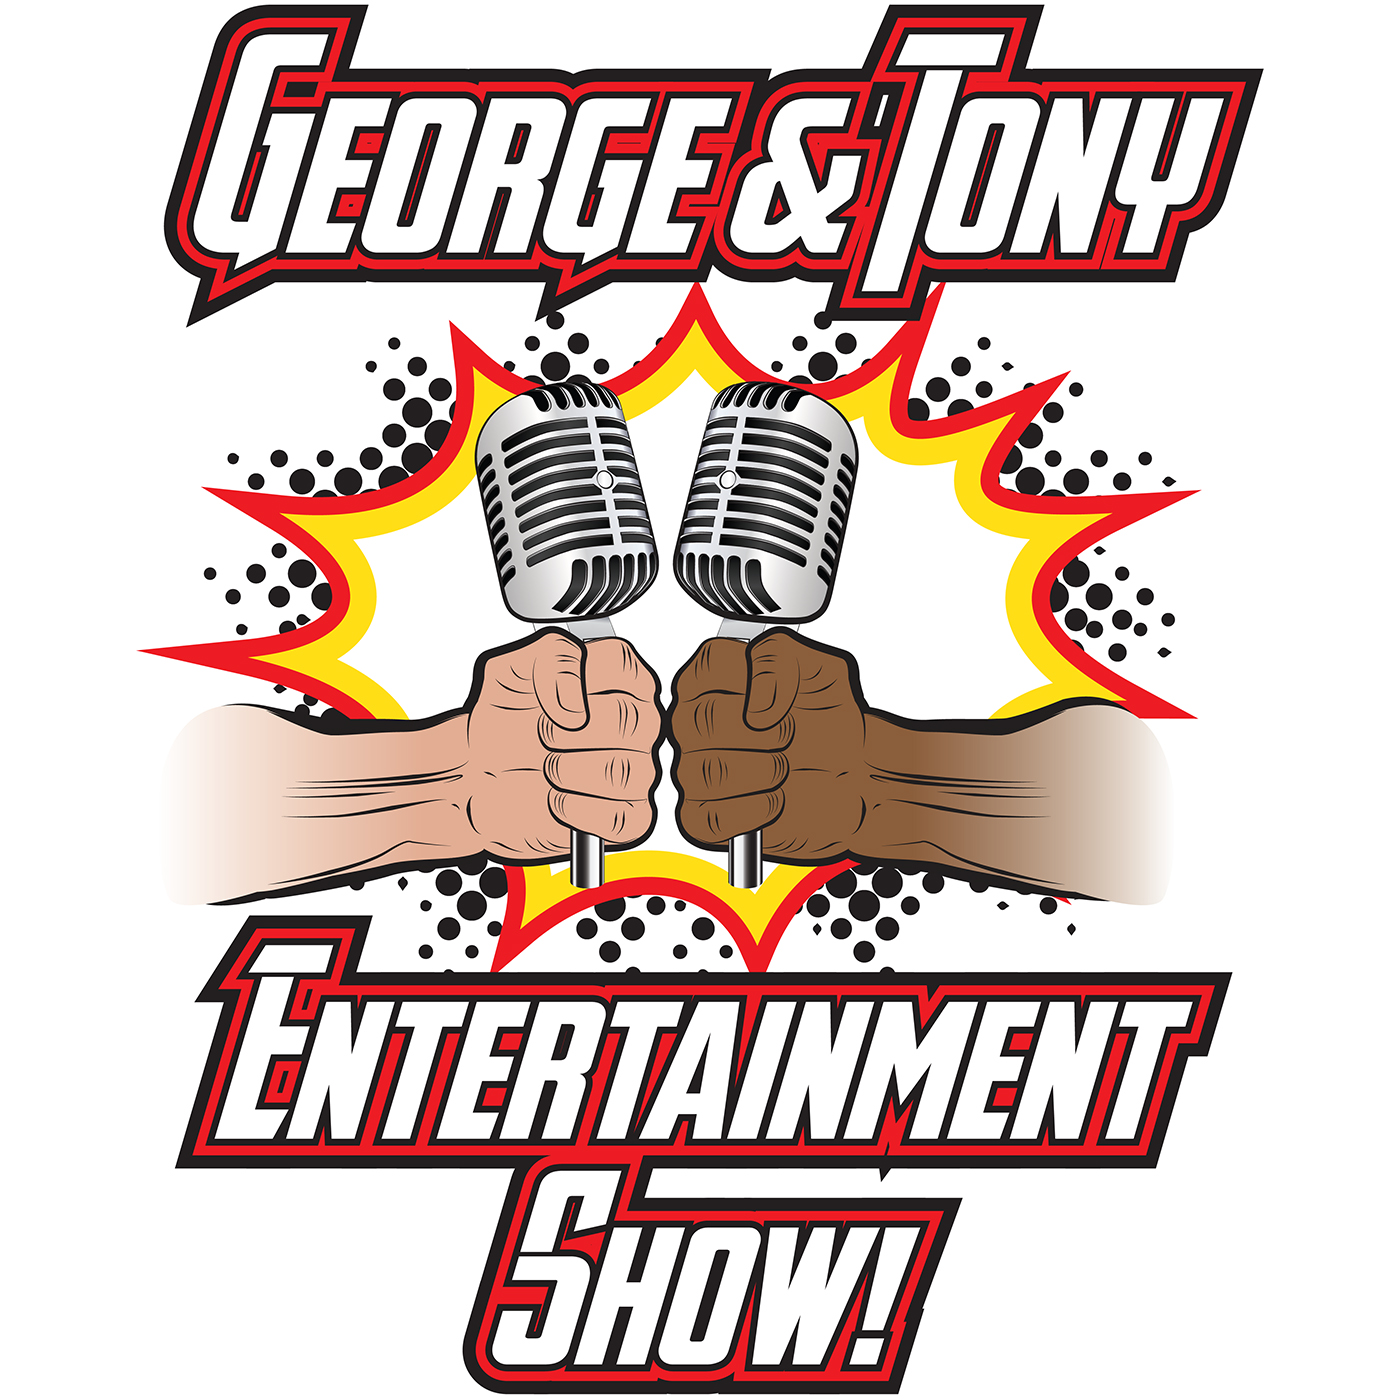 George and Tony Entertainment Show #127